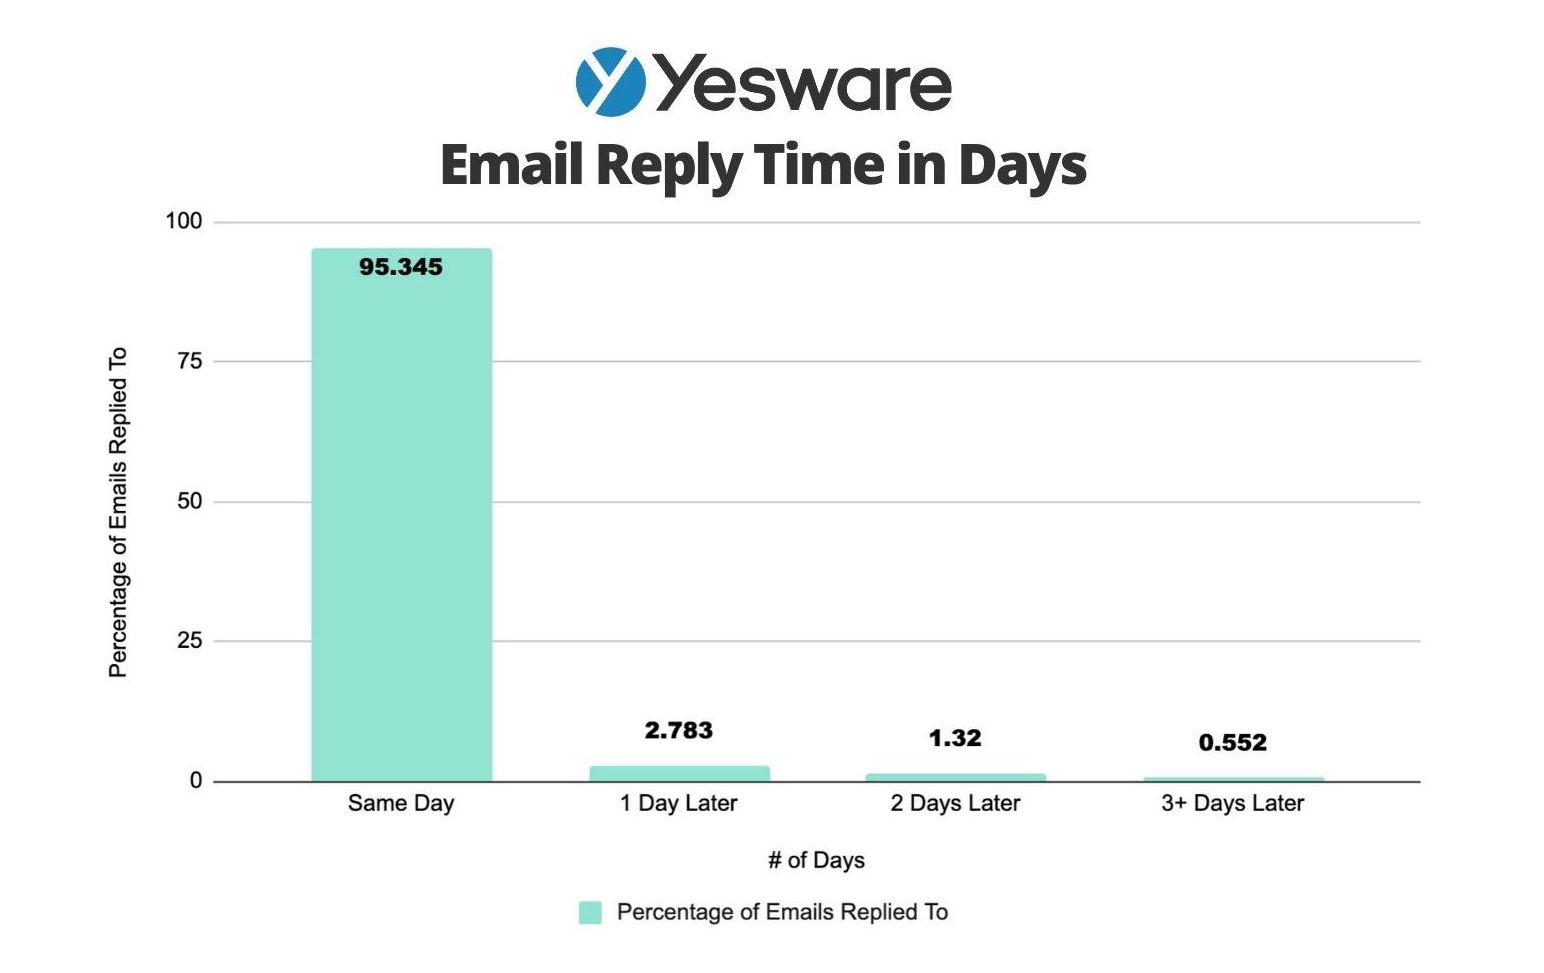 Email Reply Time in Days